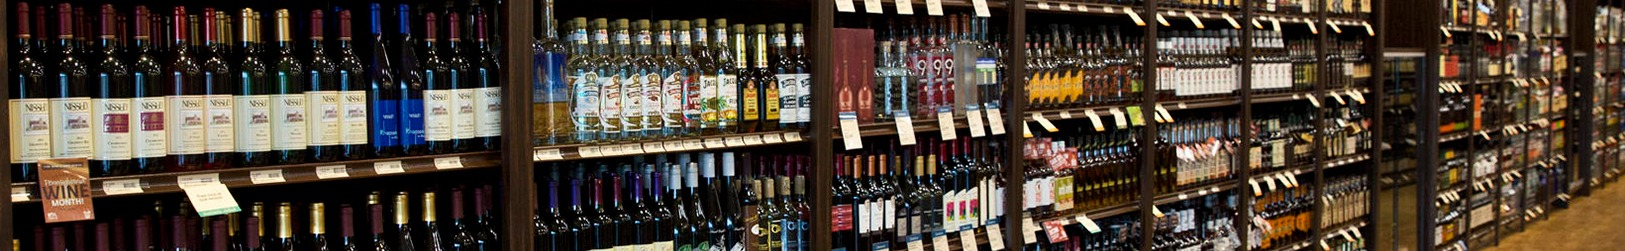 Why Did Pennsylvania Become a Liquor ControlState?